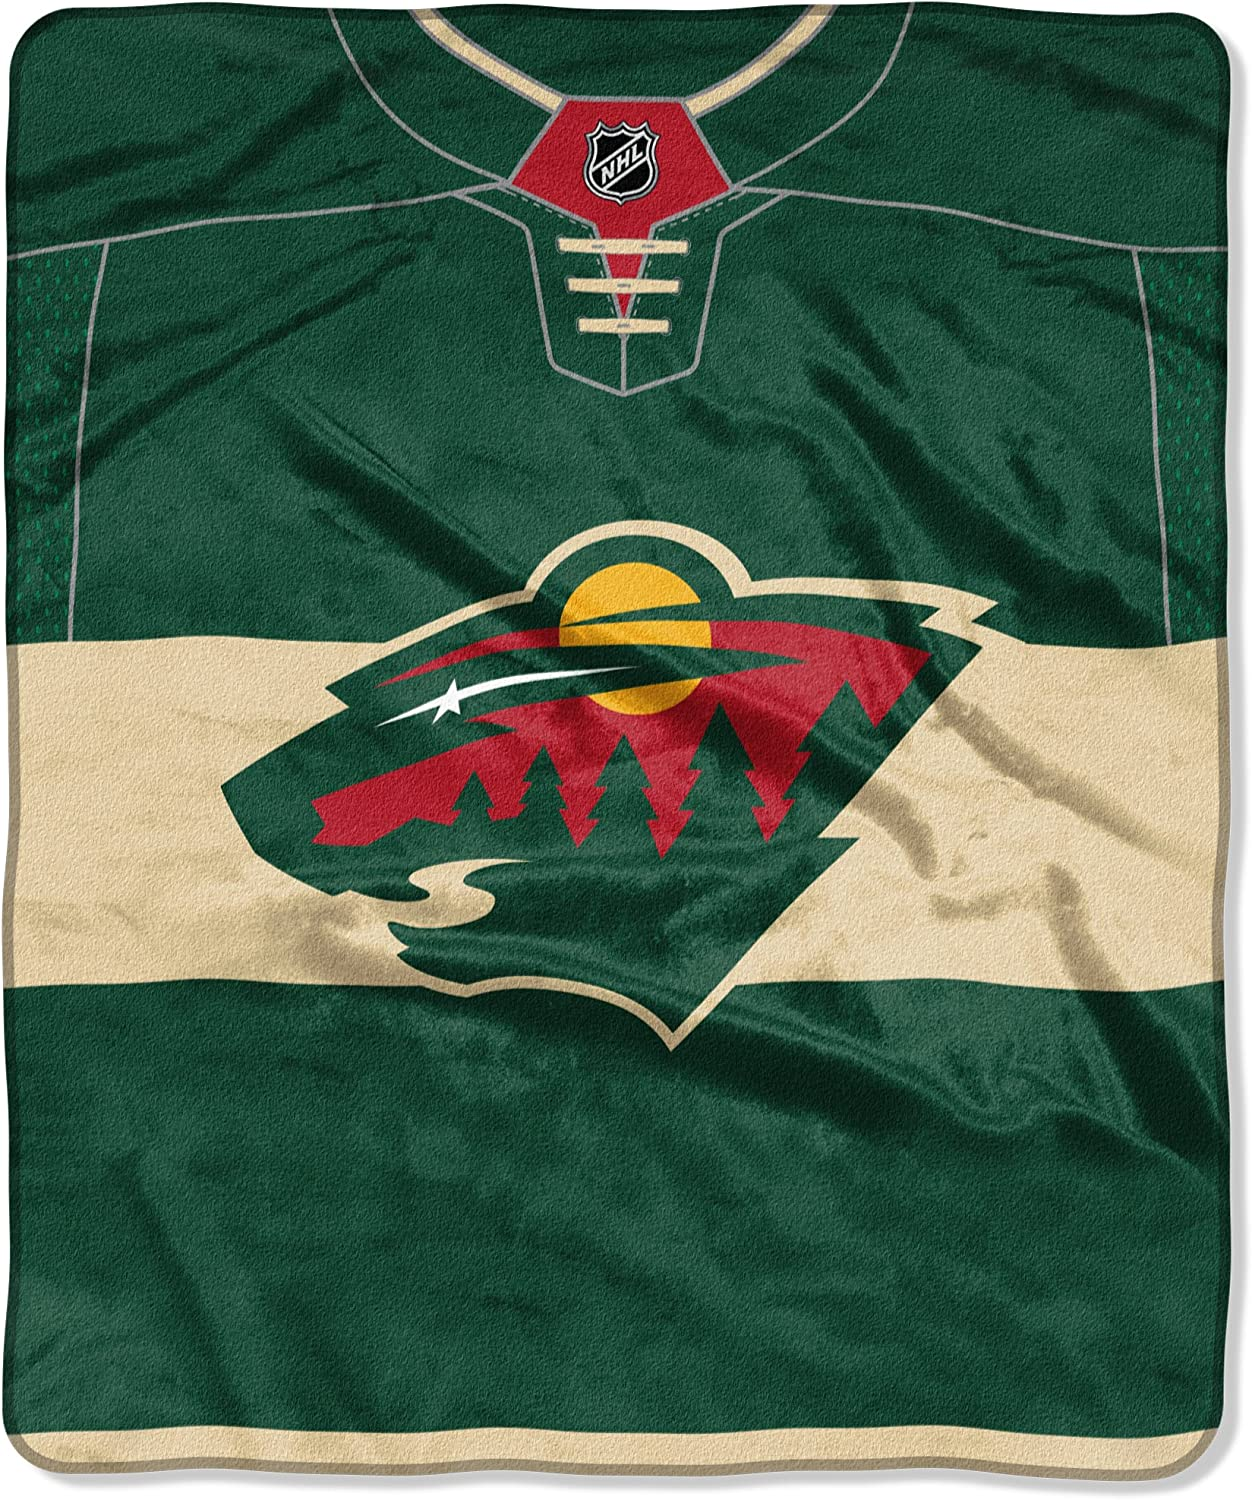 Officially Licensed NHL Pro Jersey Plush Raschel Throw Blanket 50 x 60